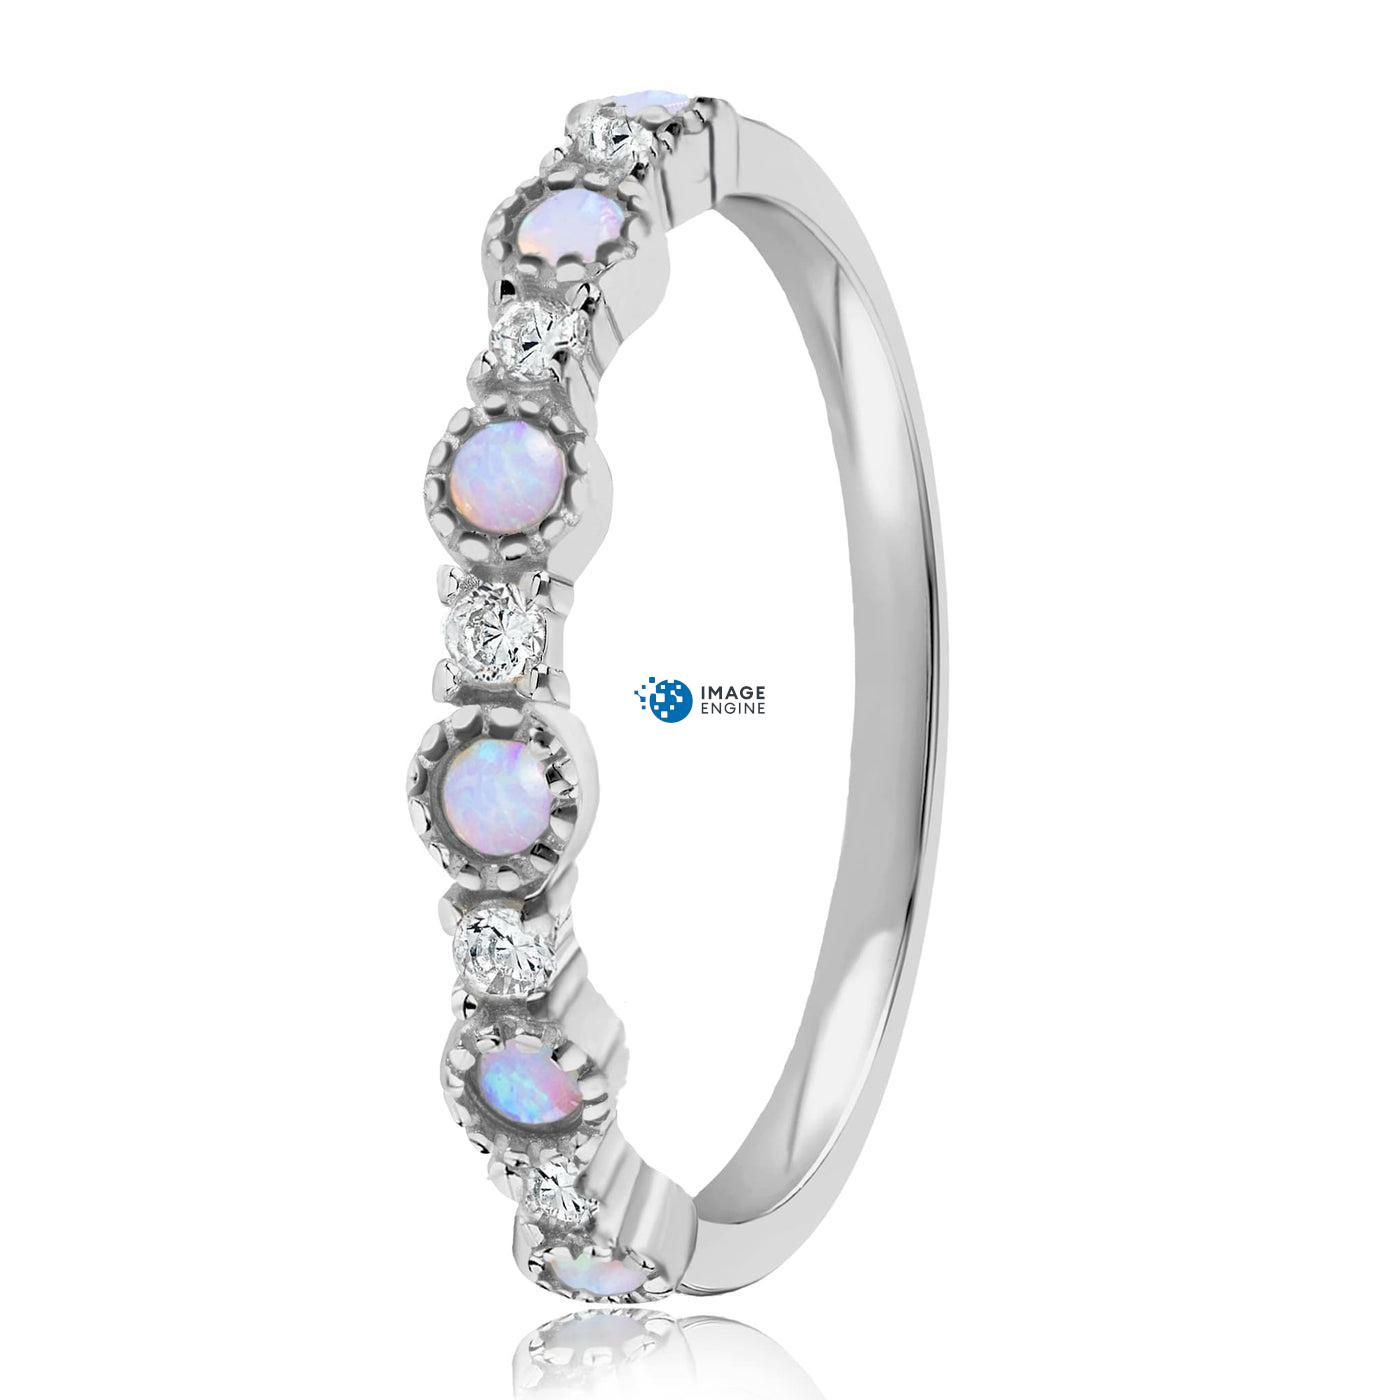 Debra Dots Opal Ring - Side View - 925 Sterling Silver